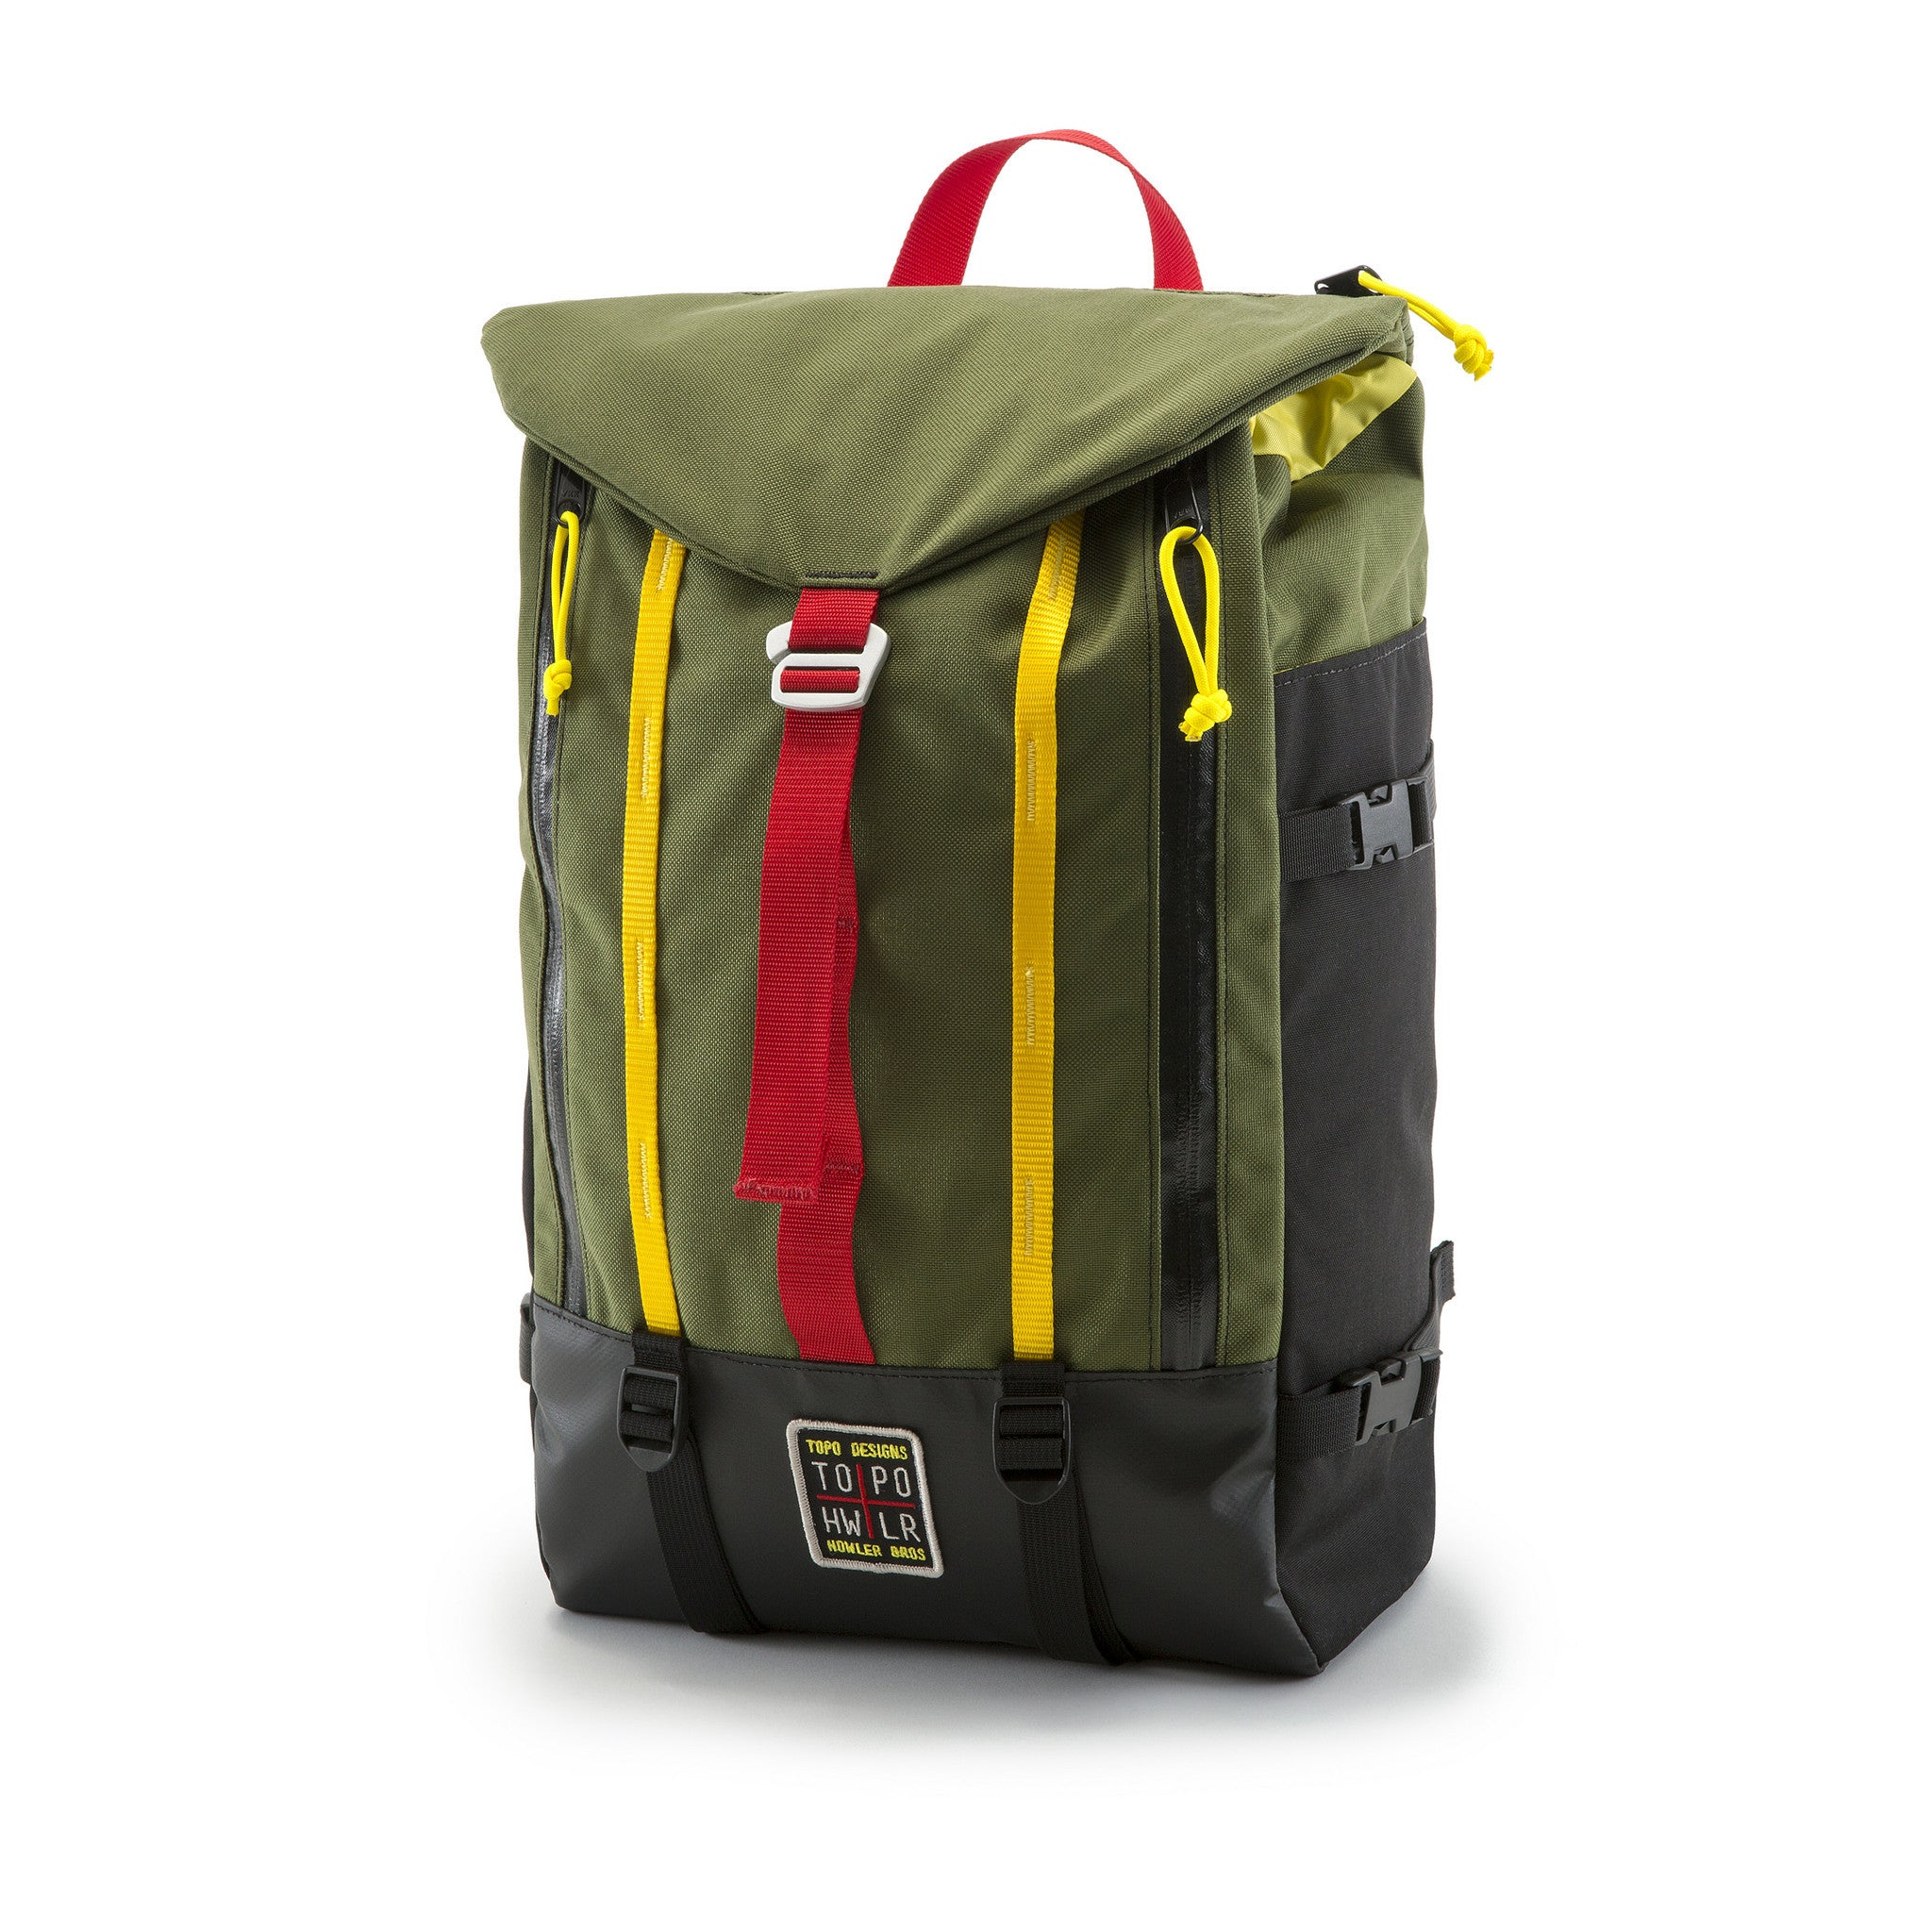 6d45e5d64 bags-topo-designs-x-howler-brothers-mountain-pack-1.jpg?v=1522686737